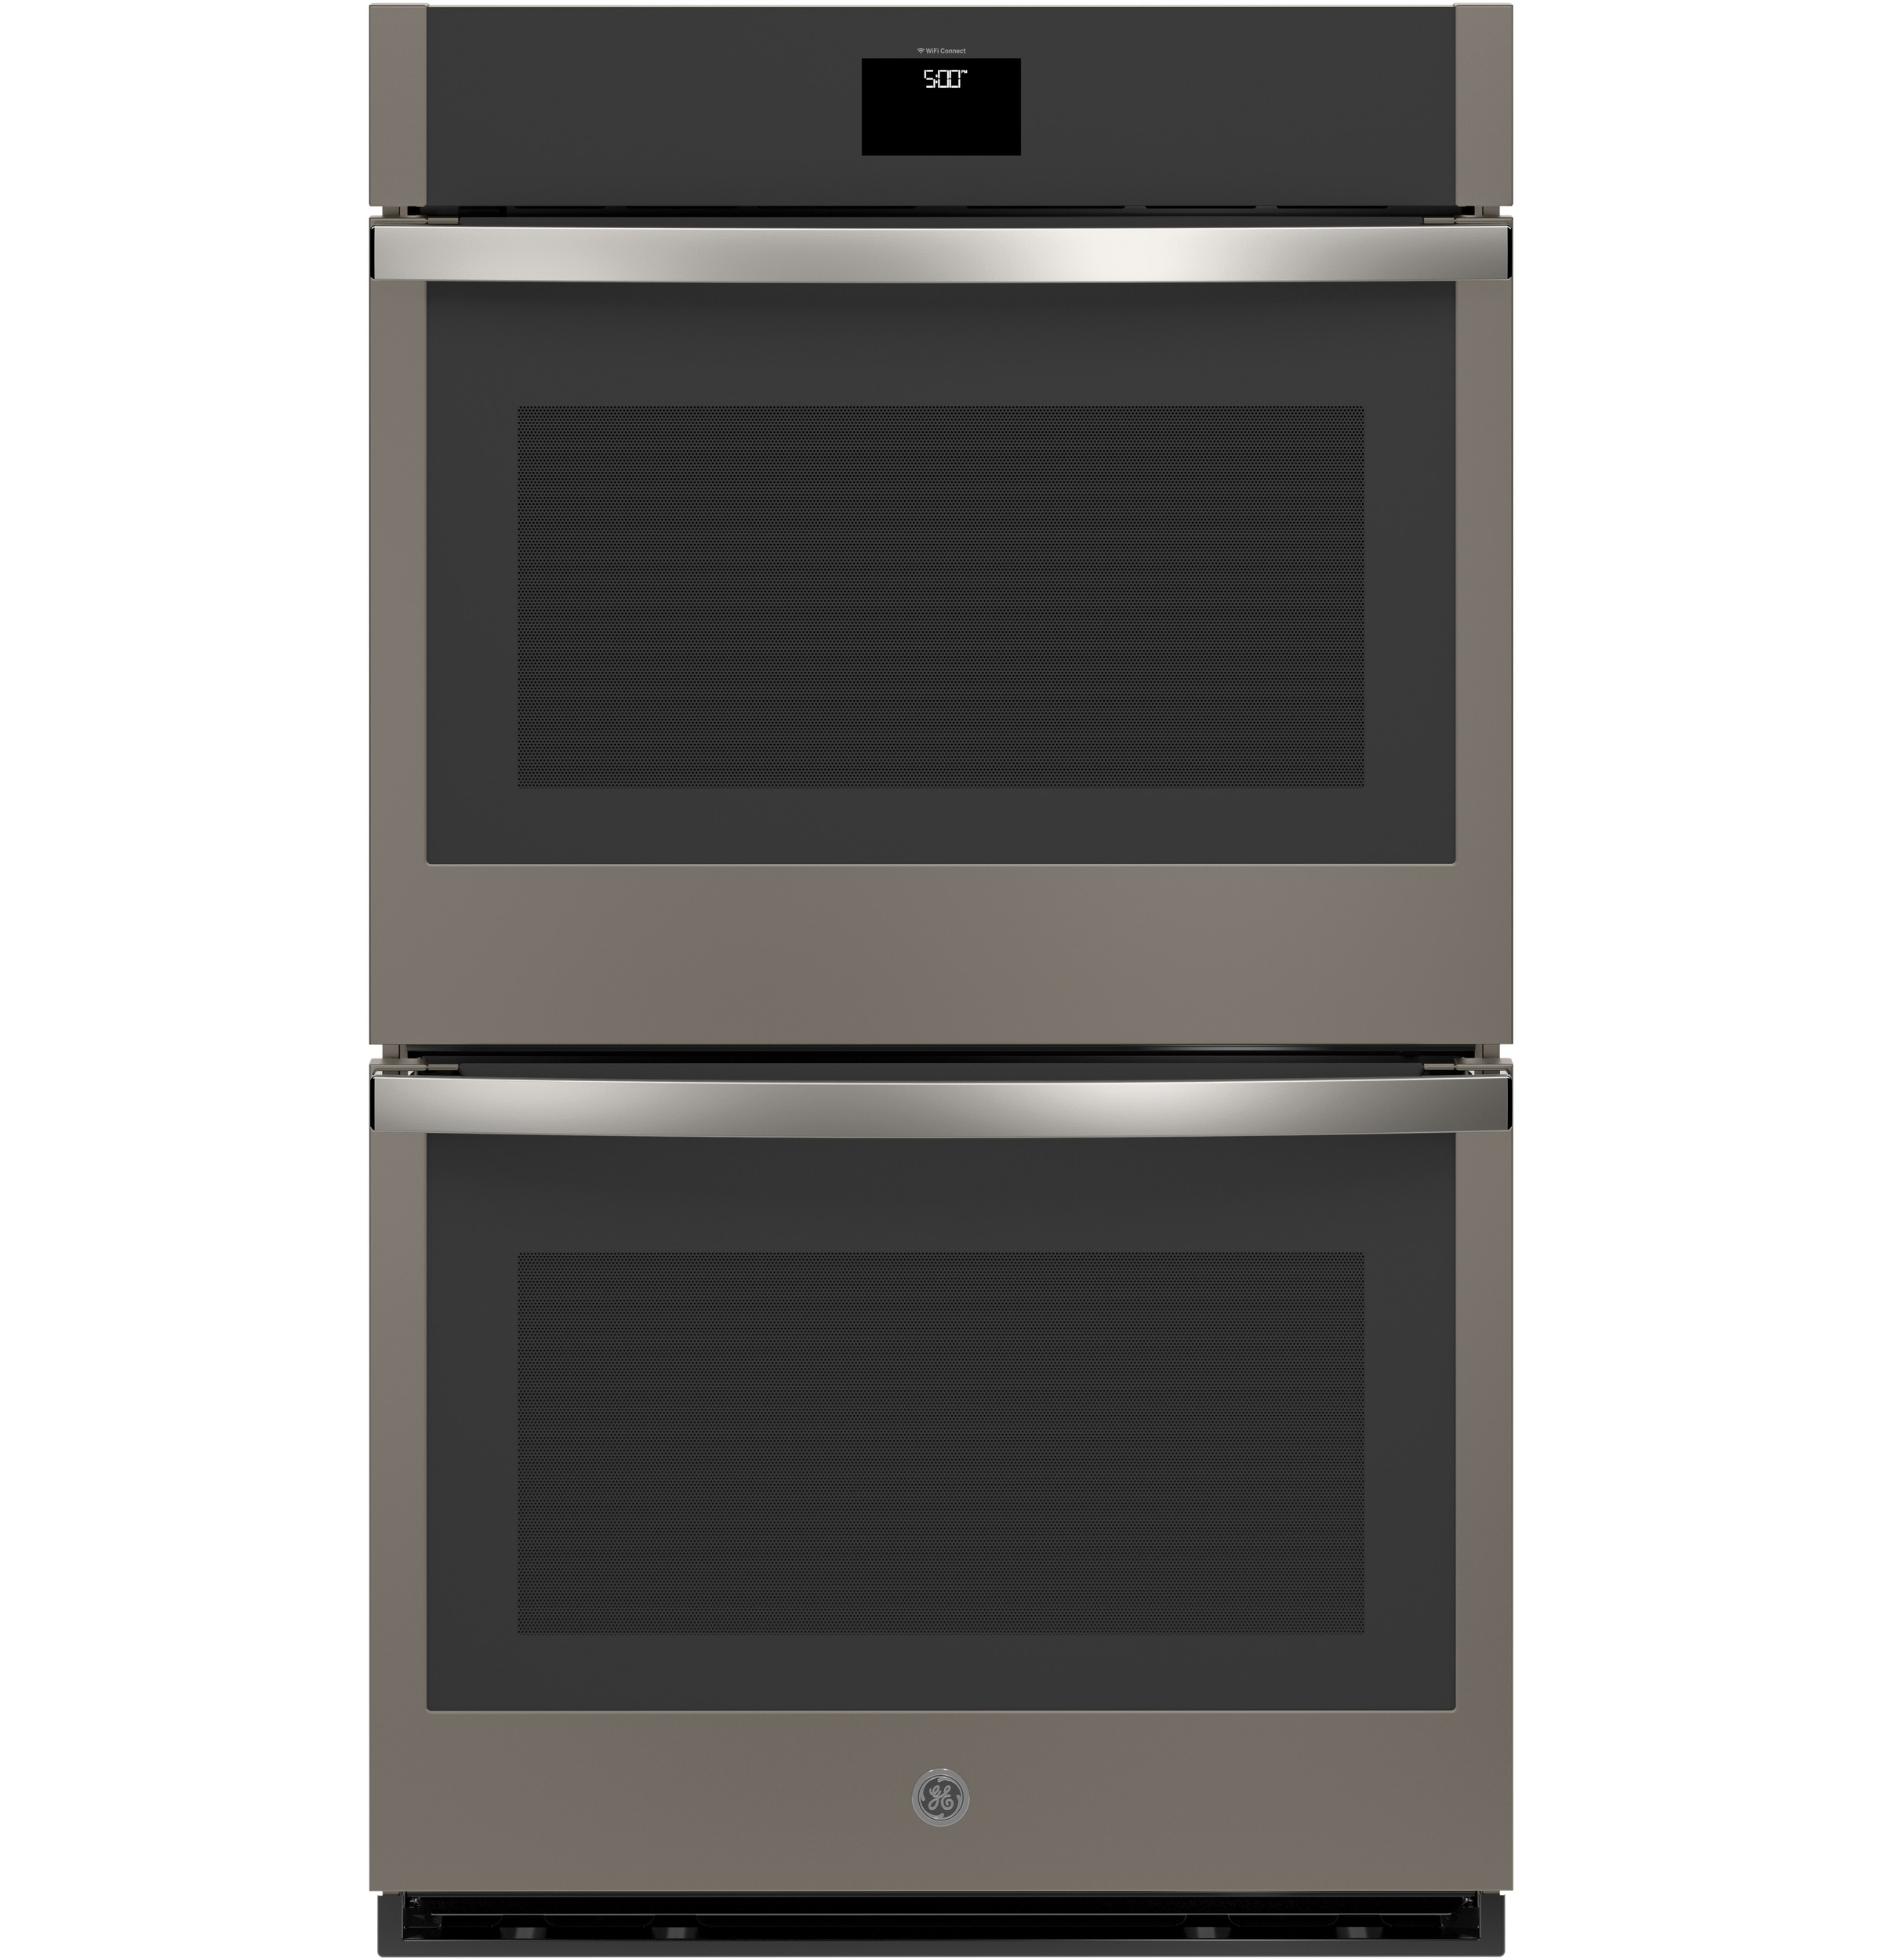 "GE GE® 30"" Smart Built-In Self-Clean Convection Double Wall Oven with Never Scrub Racks"